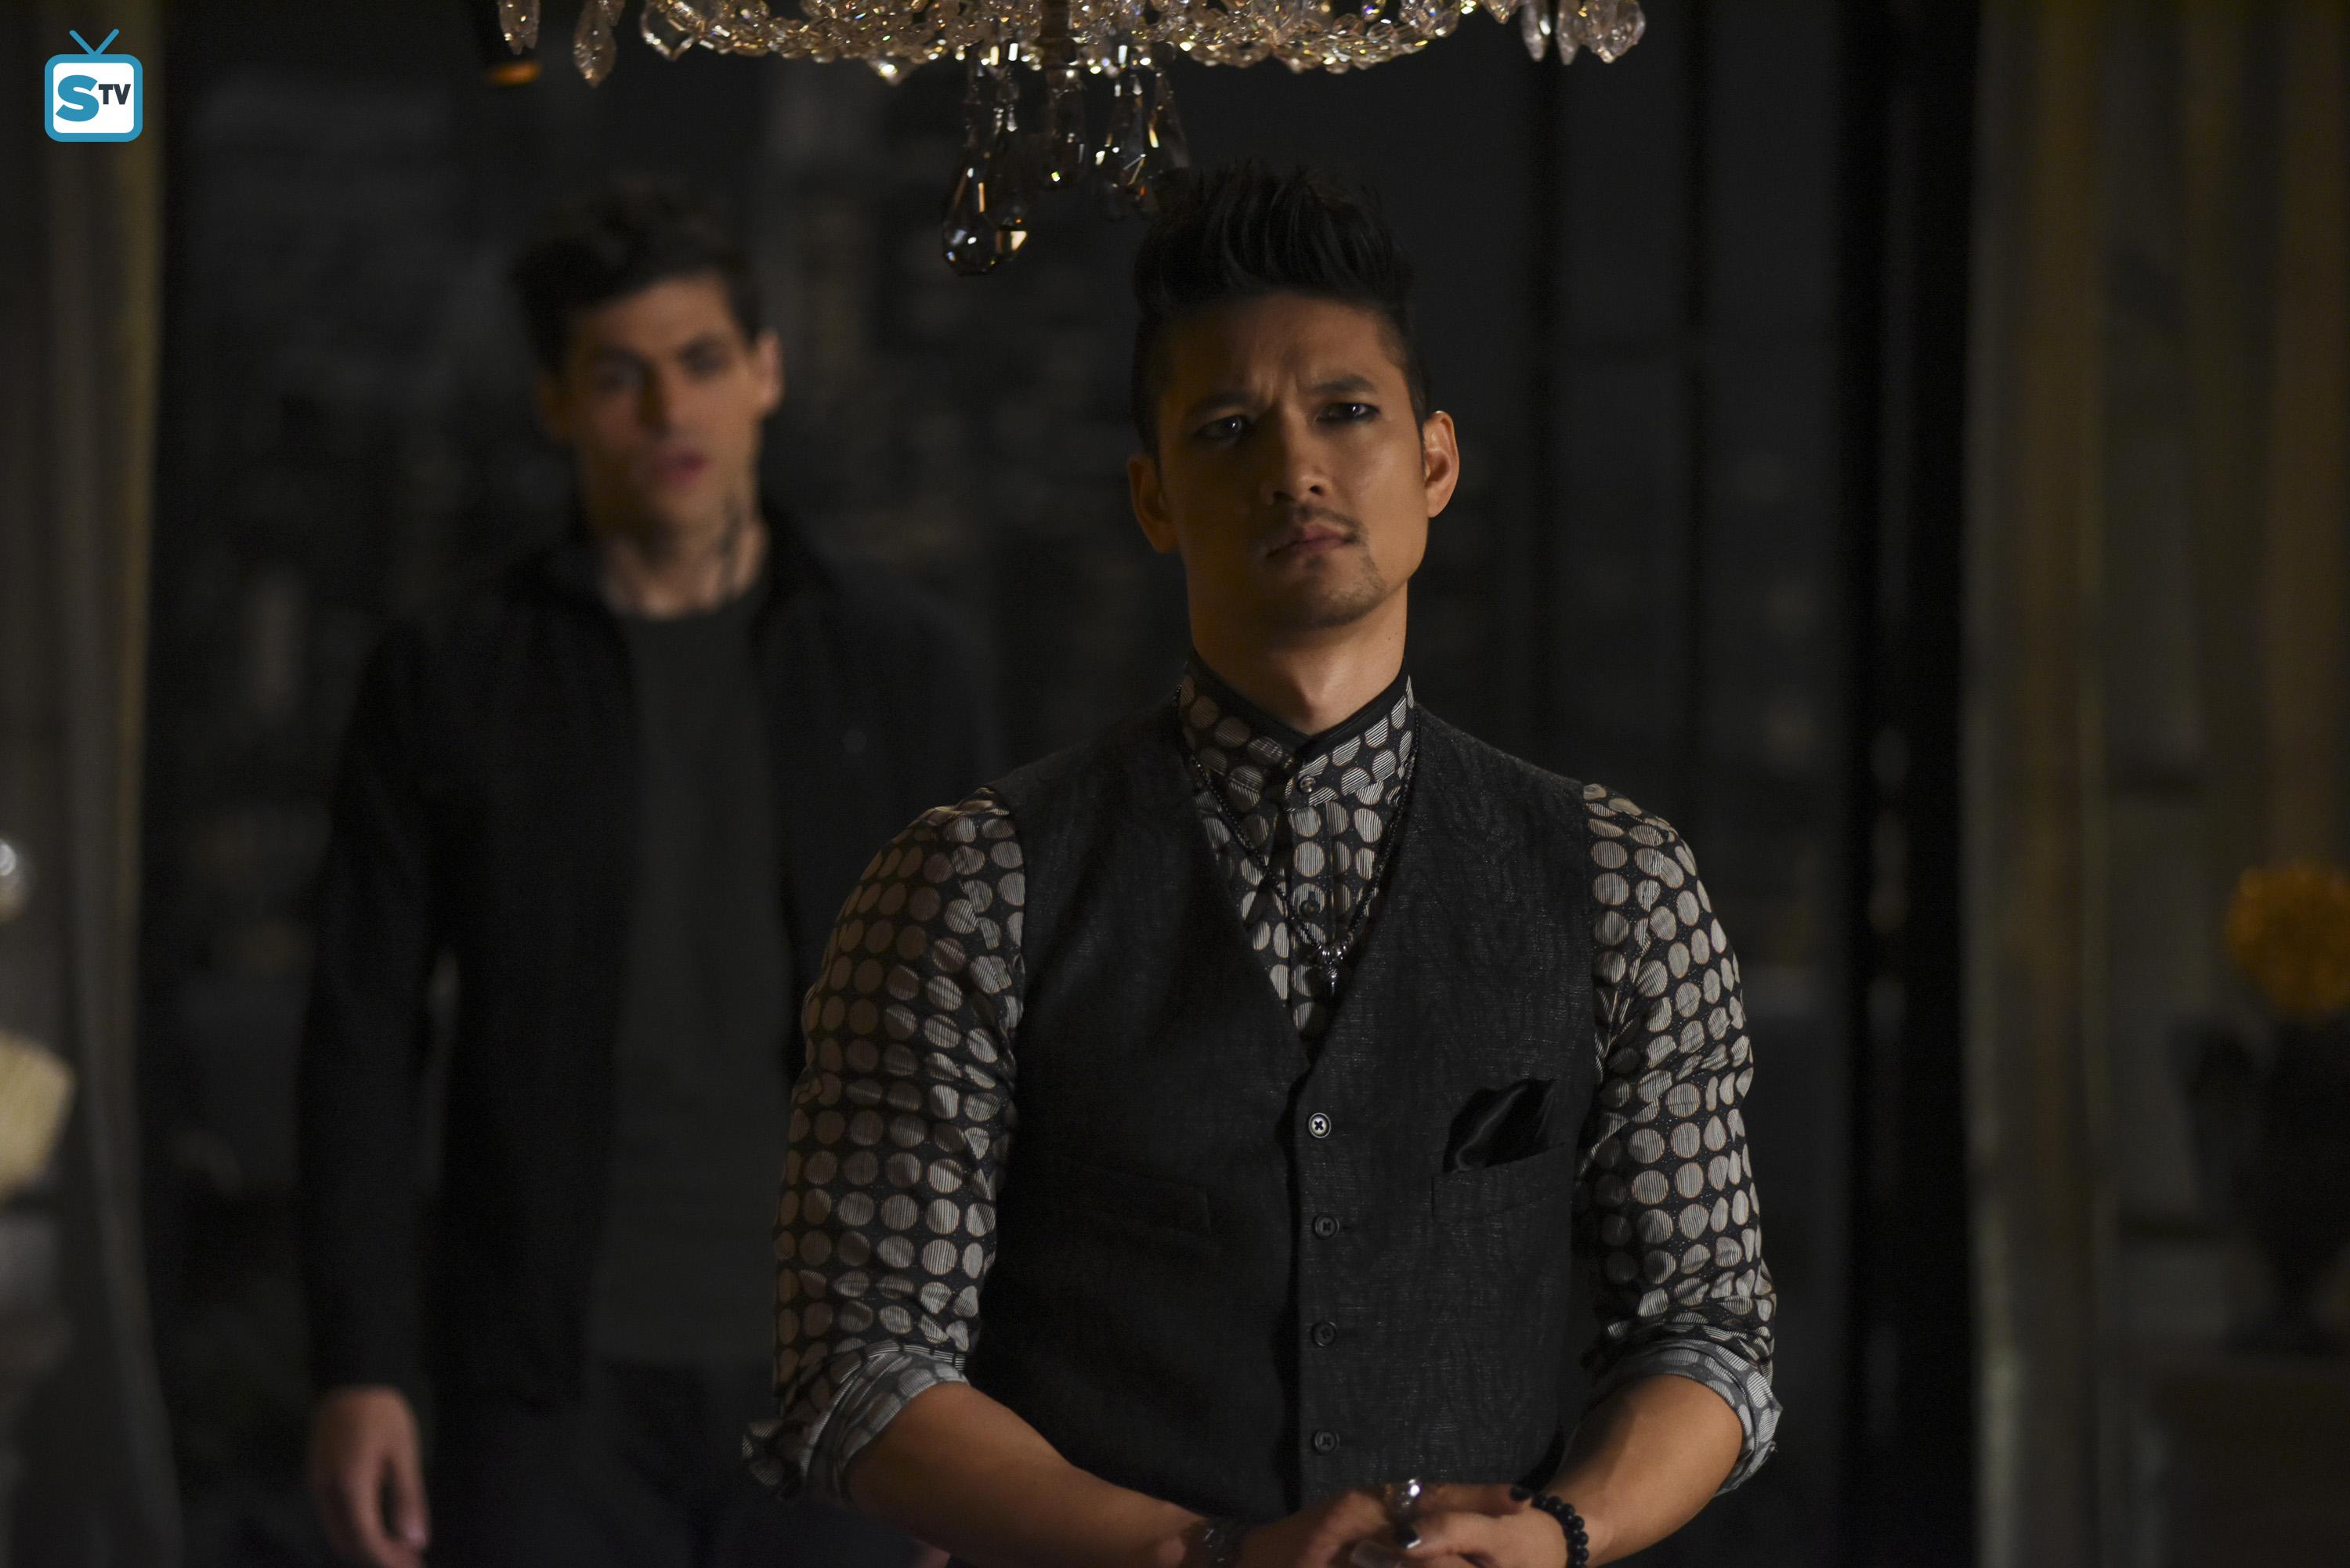 Shadowhunters - Season 2 - 2x09 - Promotional Stills